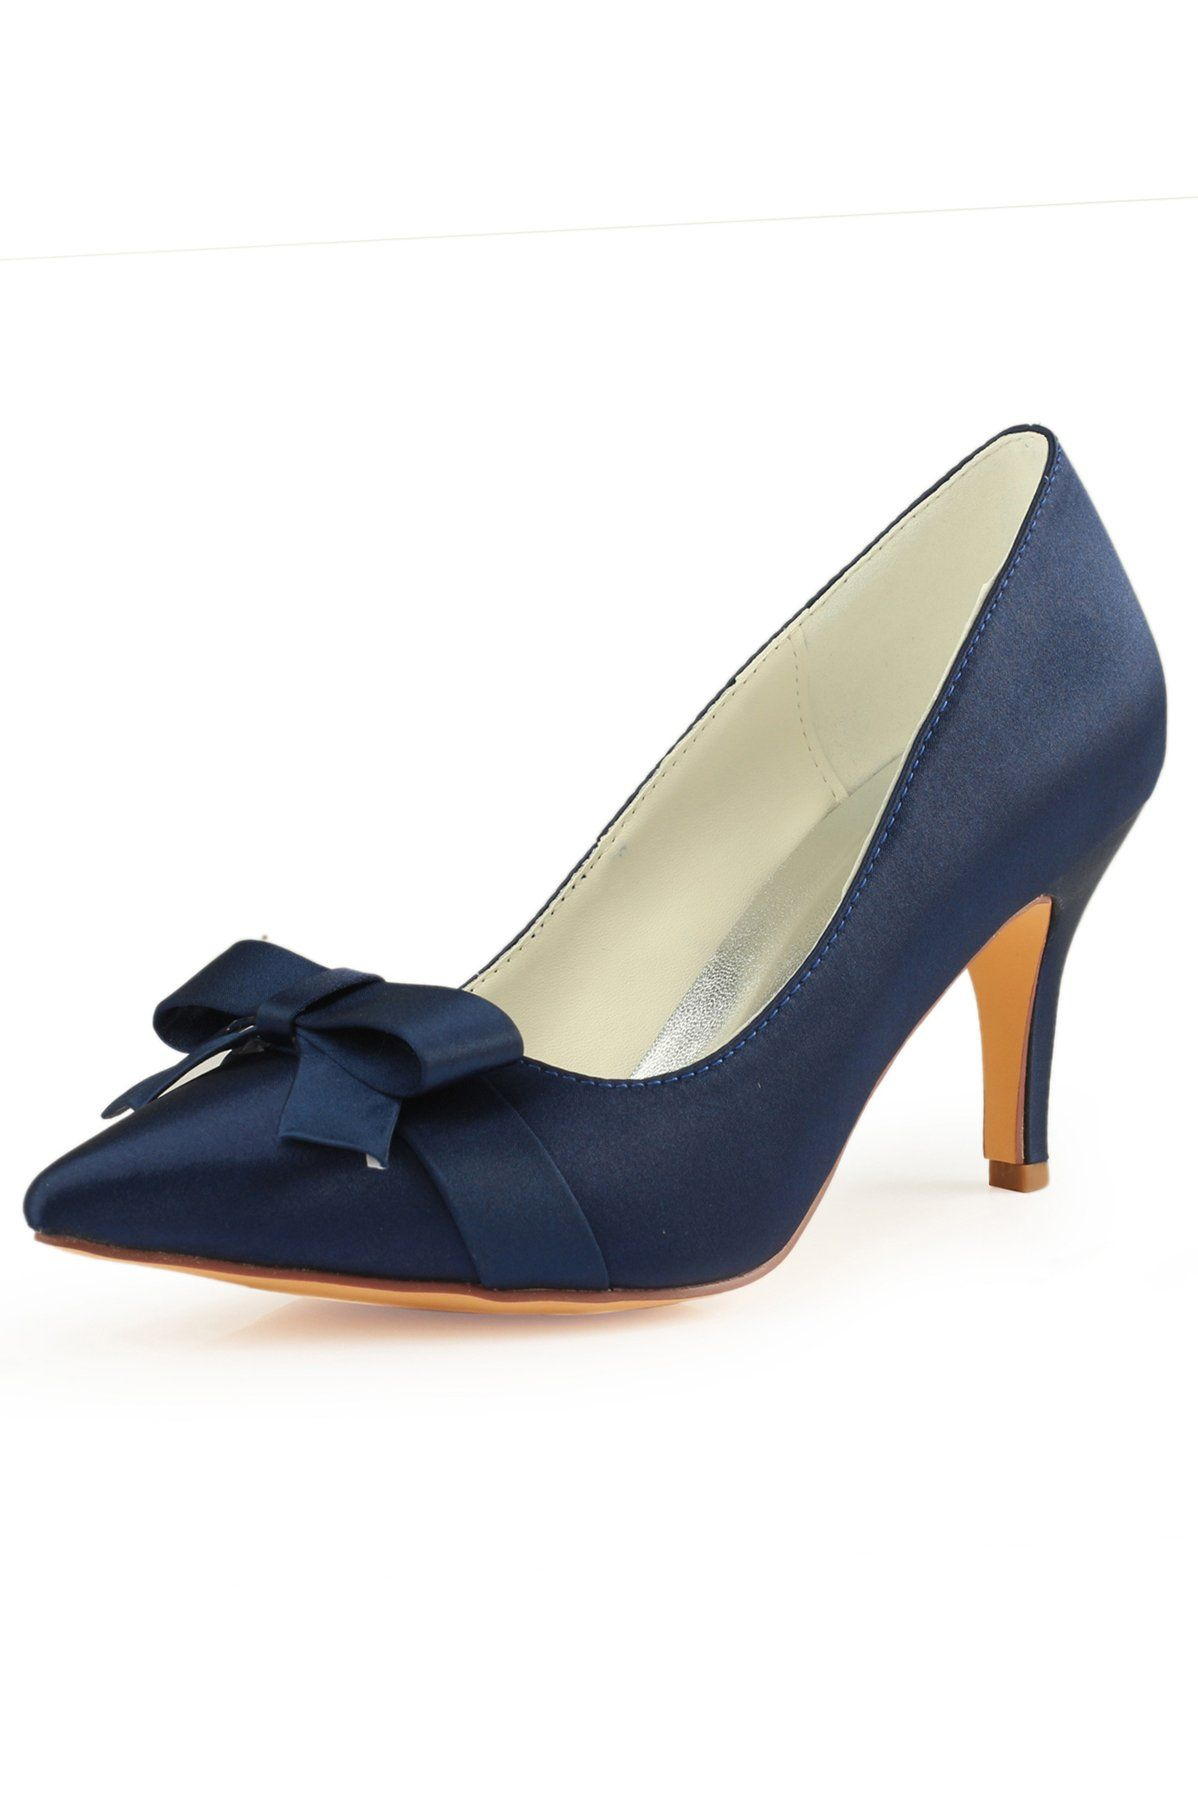 Navy Blue High Heels Wedding Shoes With Bowknot Fashion Satin Evening Party Shoes L 942 Navy Blue High Heels Blue High Heels Navy Wedding Shoes